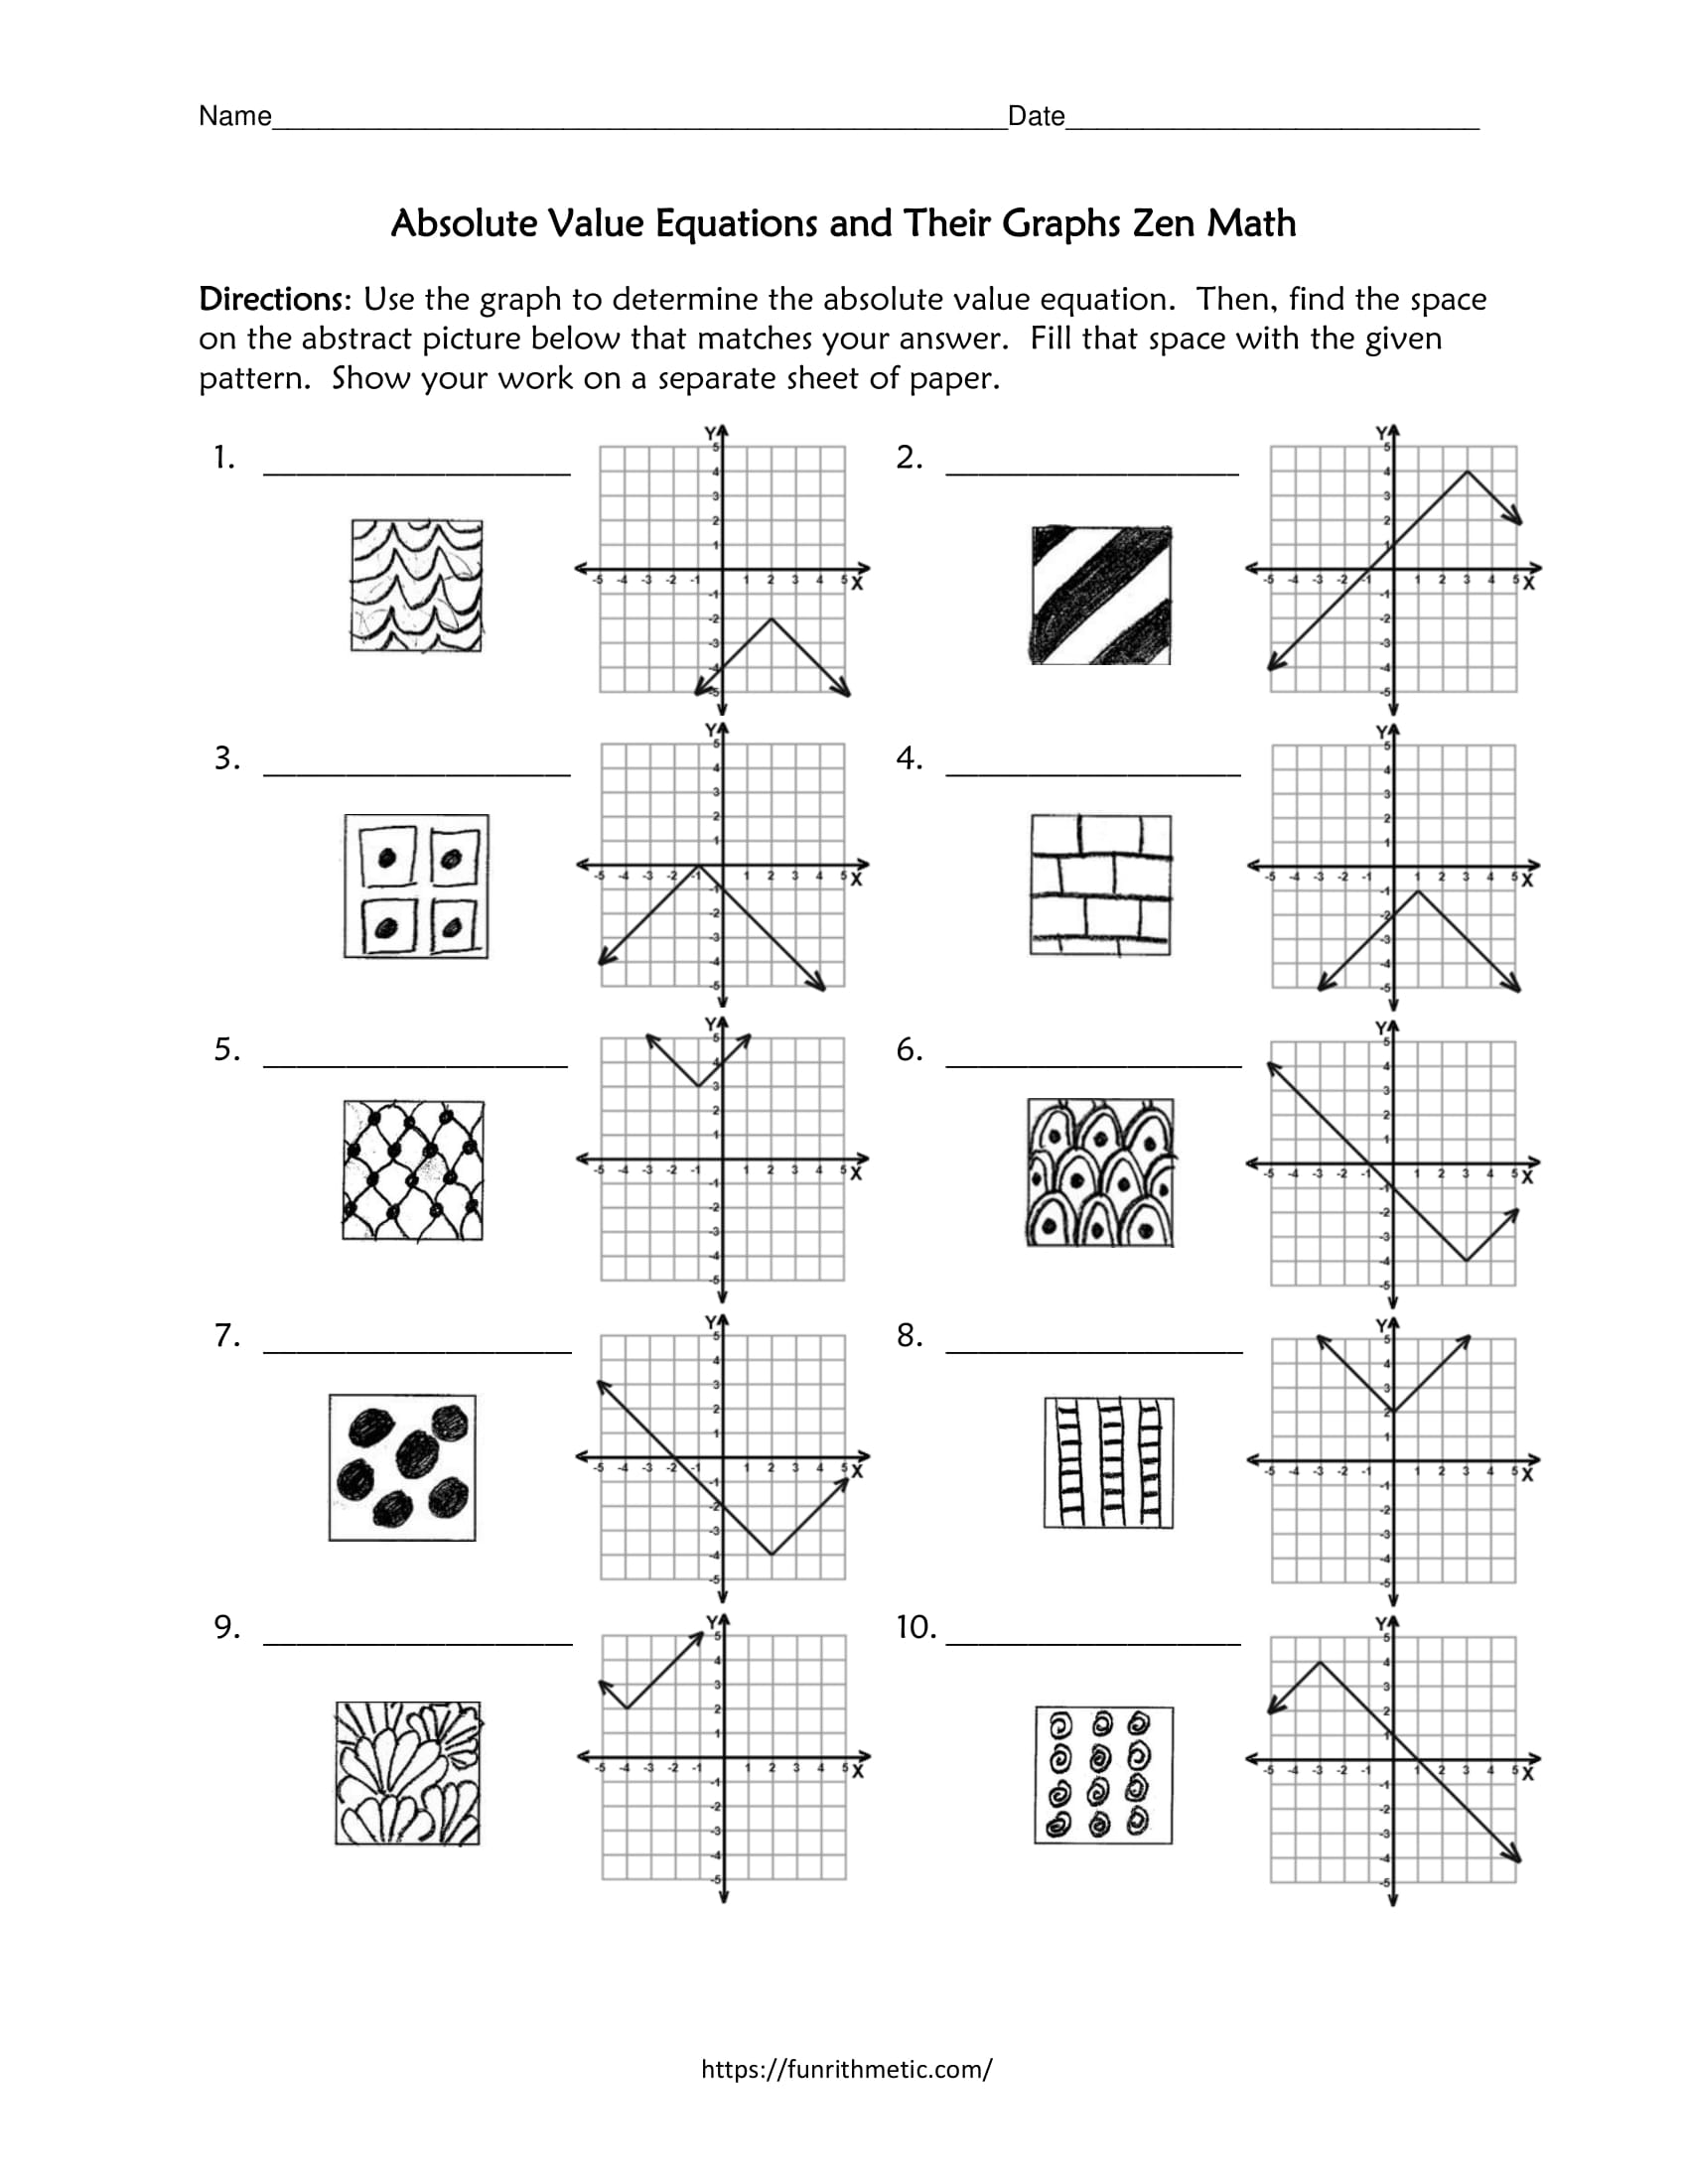 Absolute Value Equations and Their Graphs Zen Math Within Graphing Absolute Value Equations Worksheet